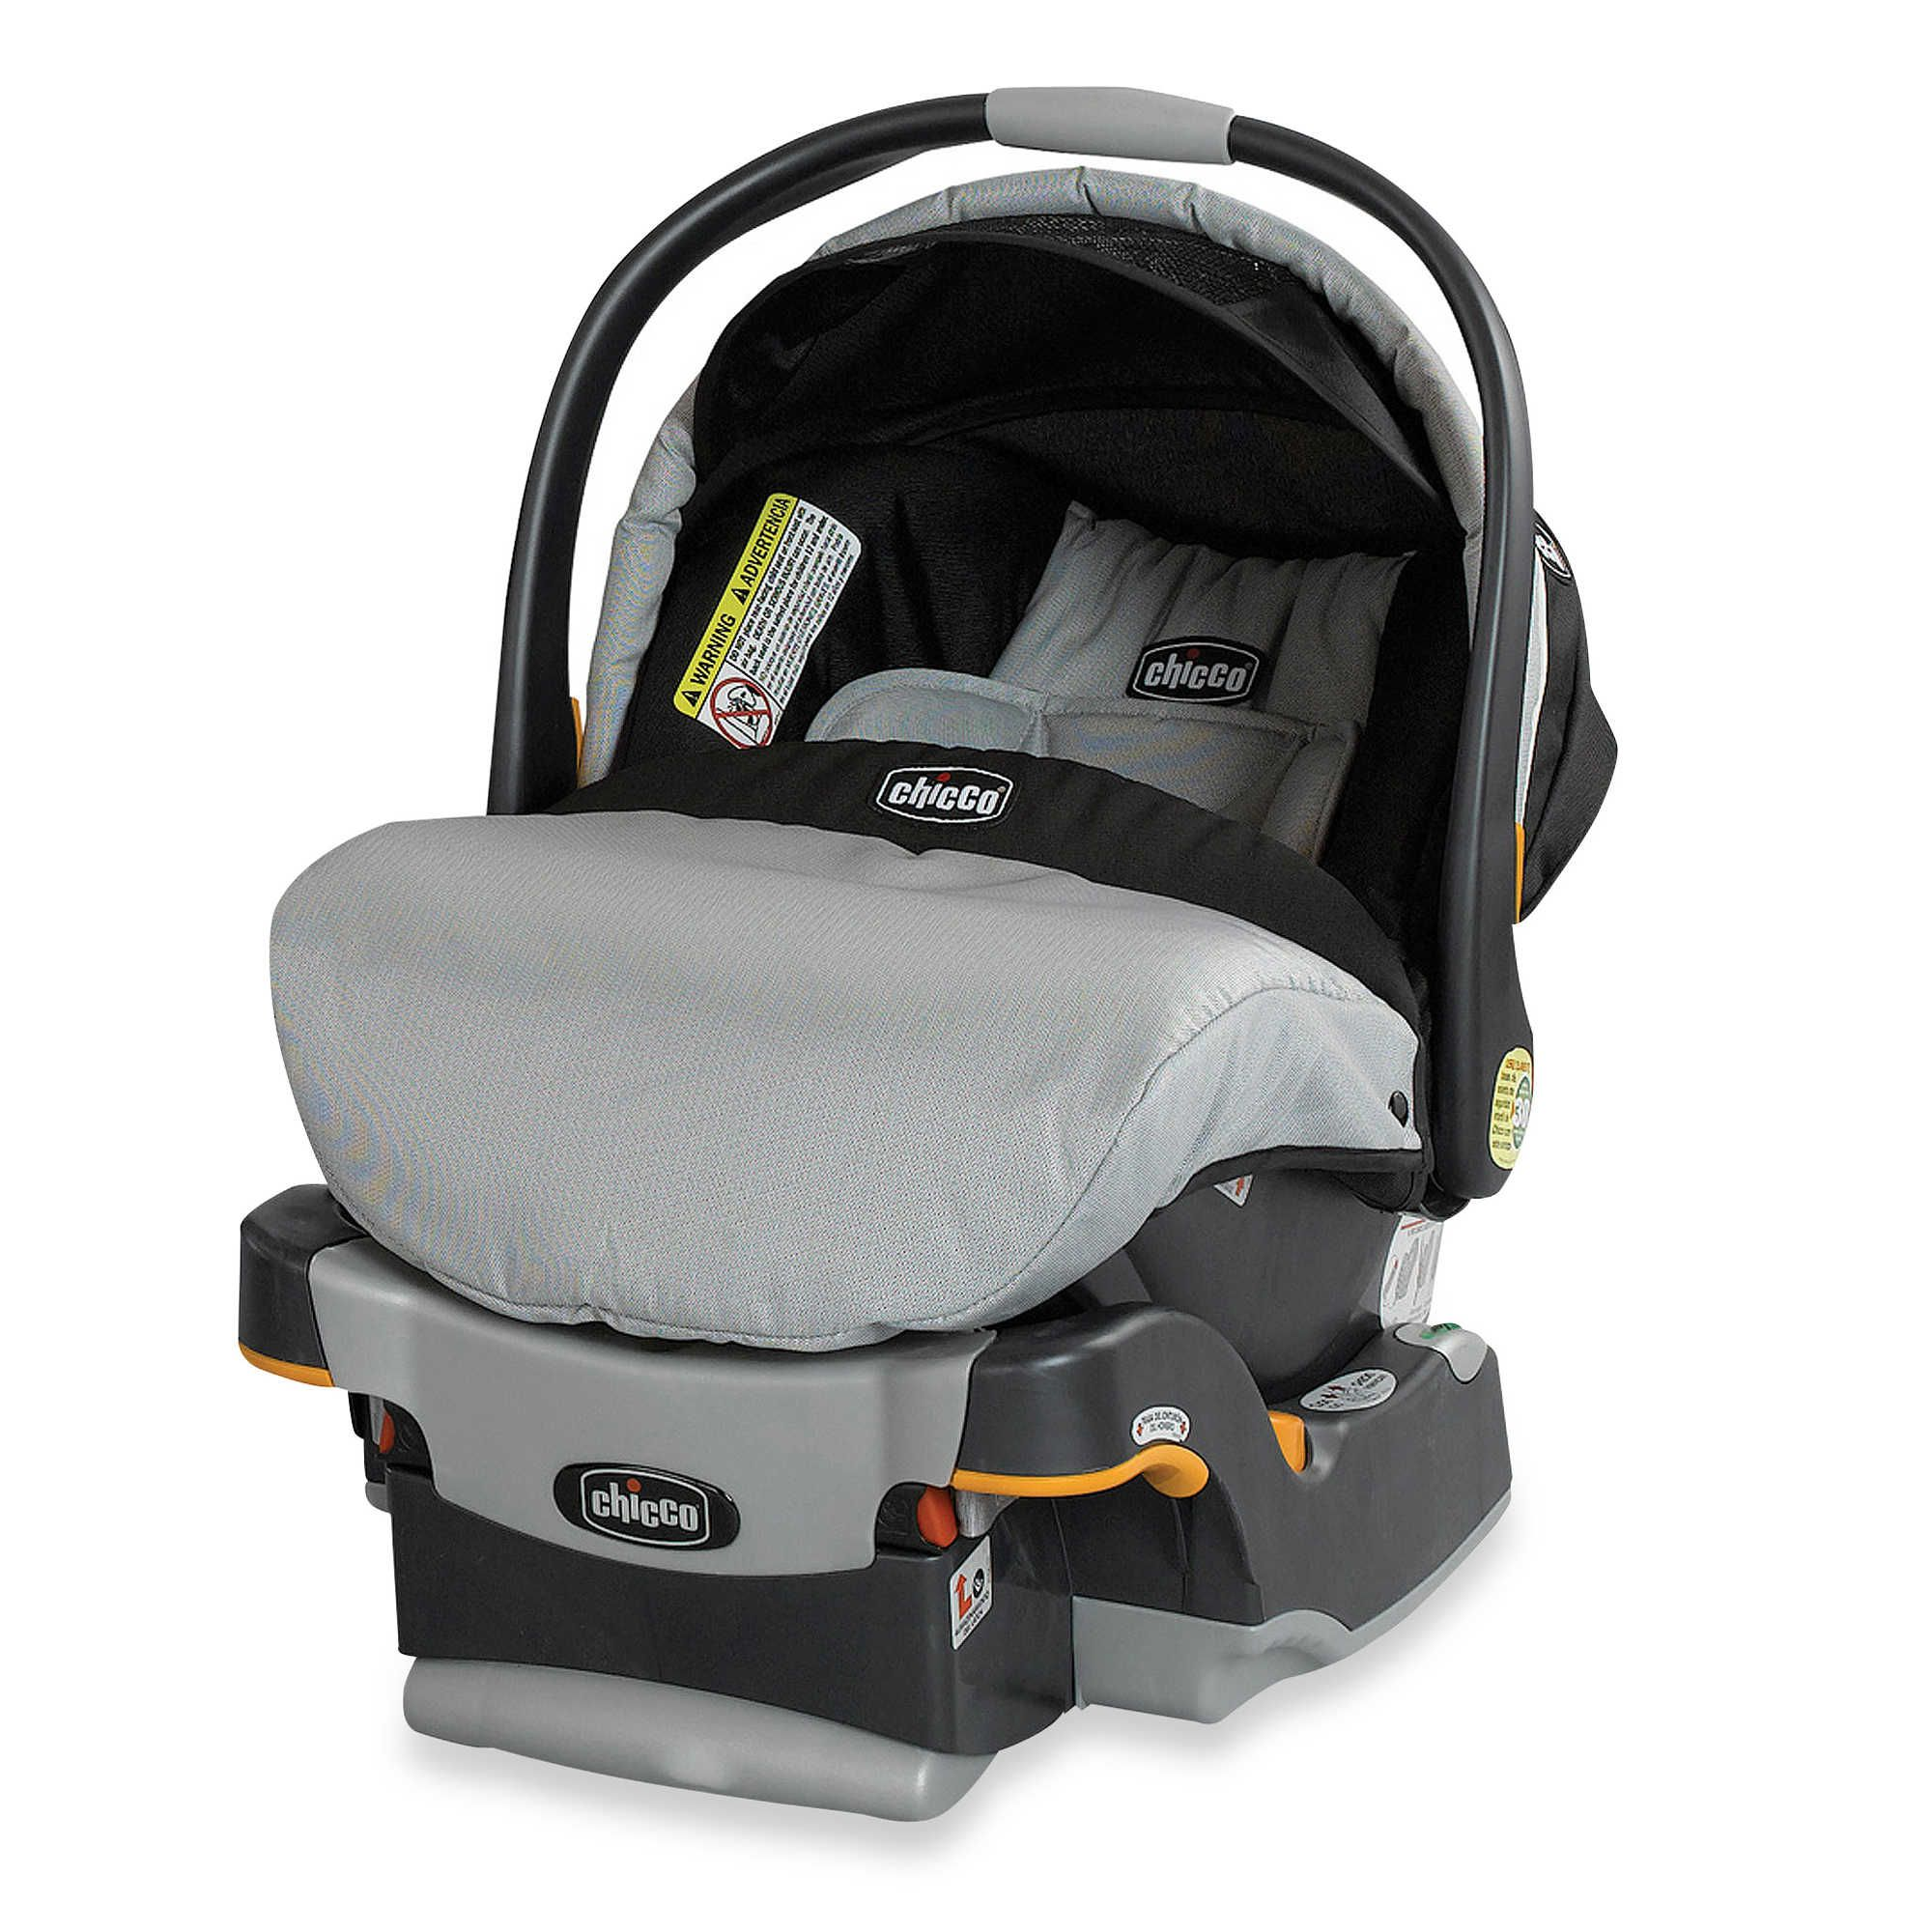 The Chicco KeyFit 30 Infant Car Seat Is Premier Carrier For Safety Comfort And Convenience It Has A Removable Newborn Insert Thickly